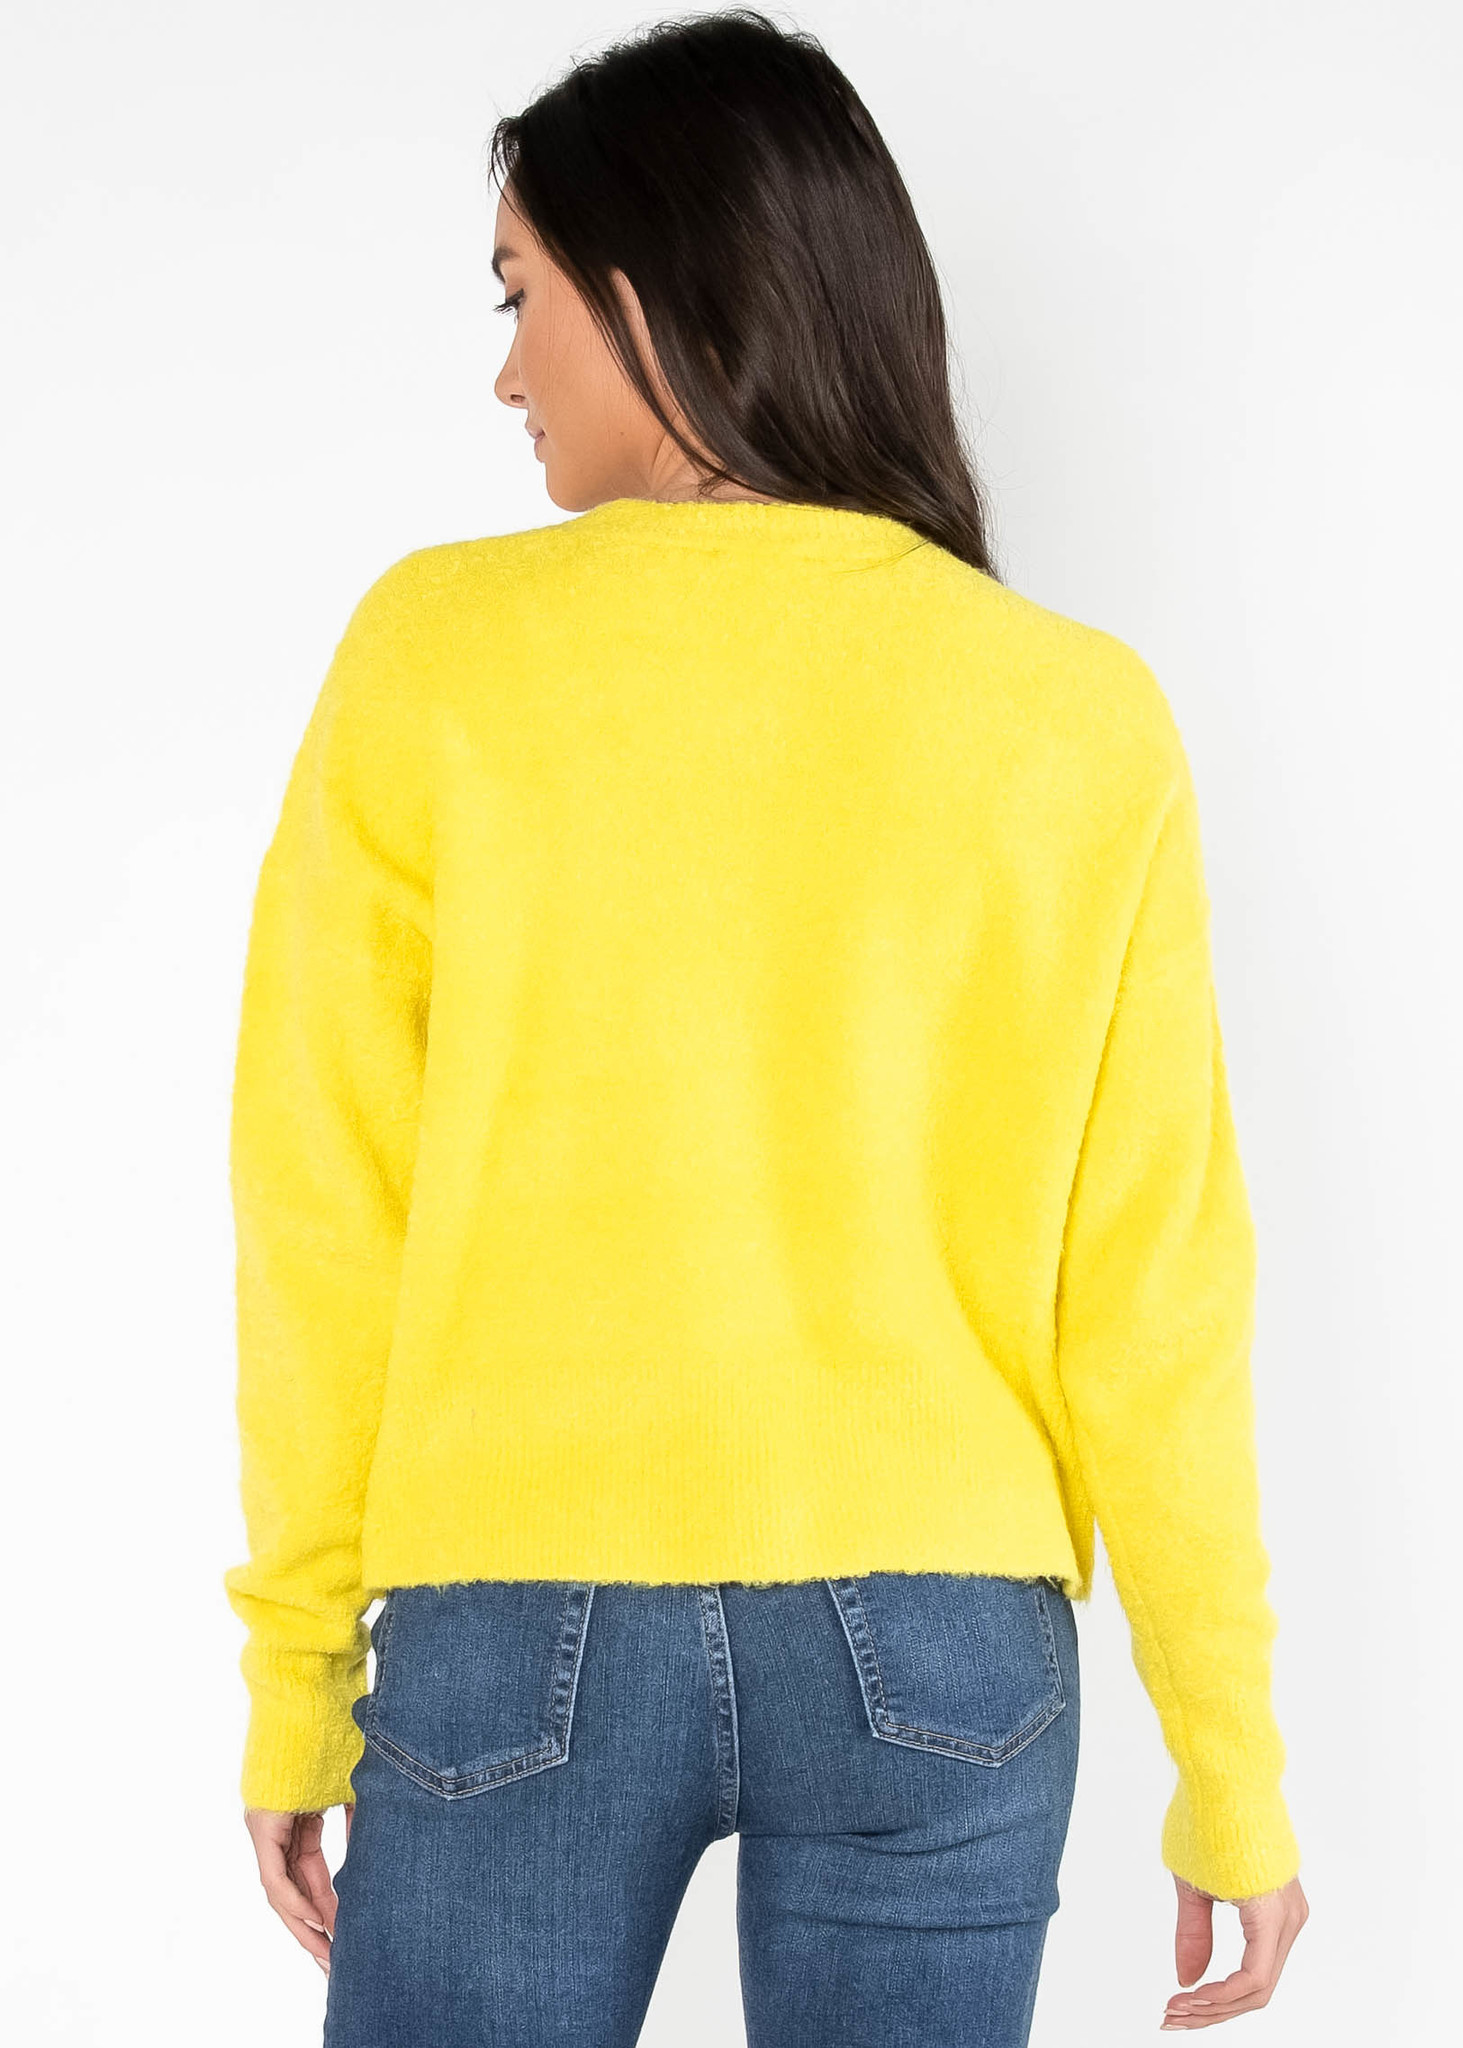 BRINK OF FALLING NEON SWEATER